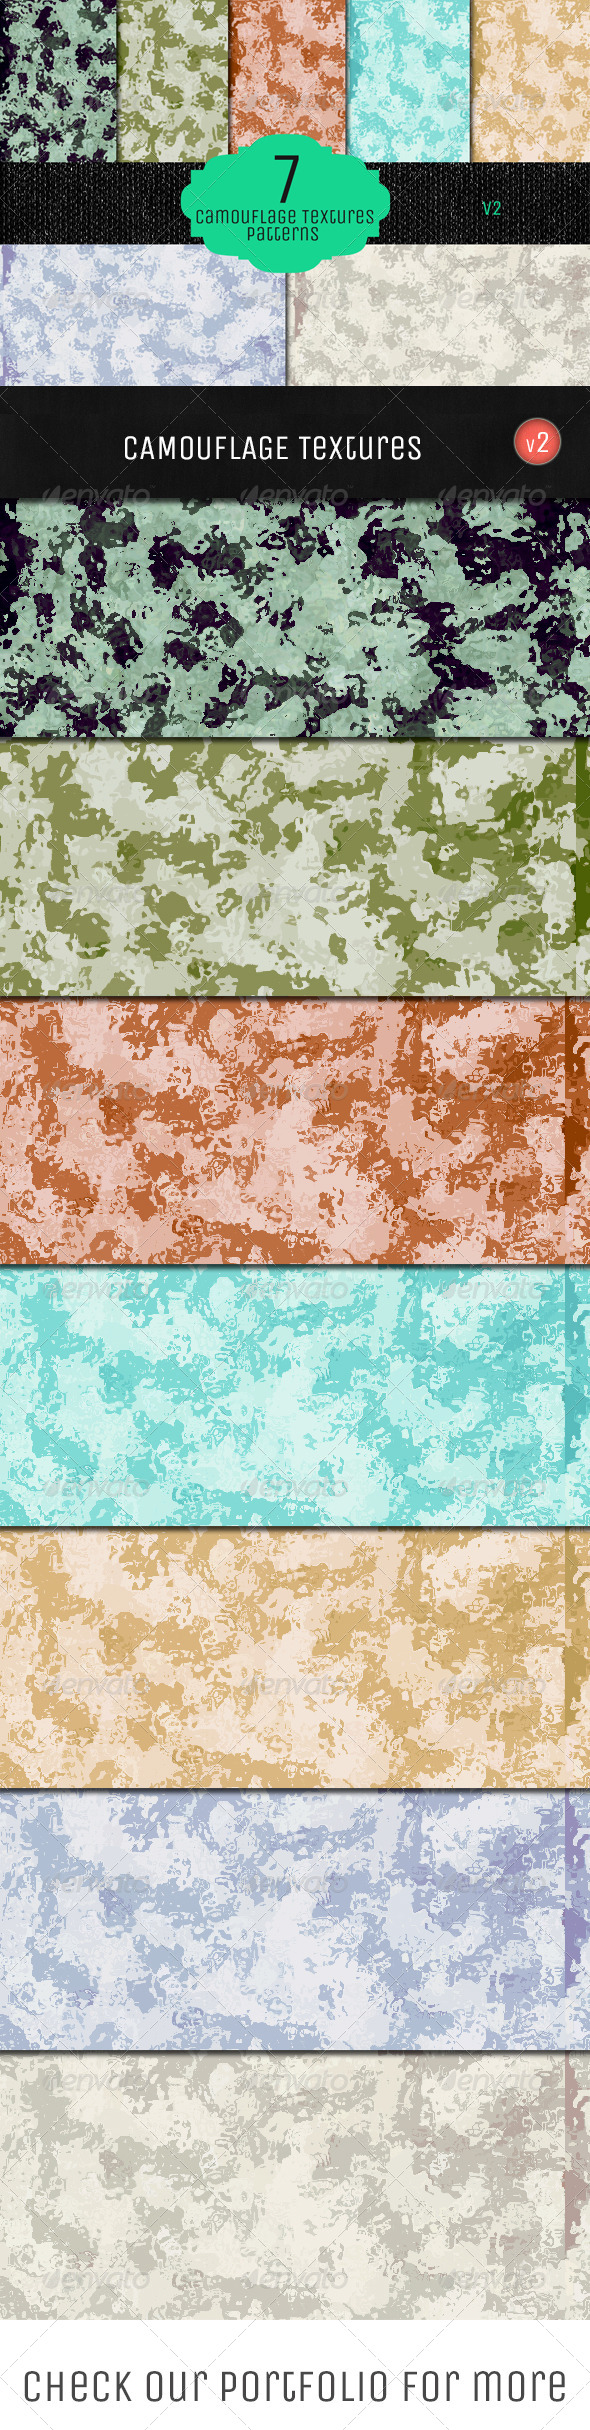 GraphicRiver Camouflage Textures V2 5735363